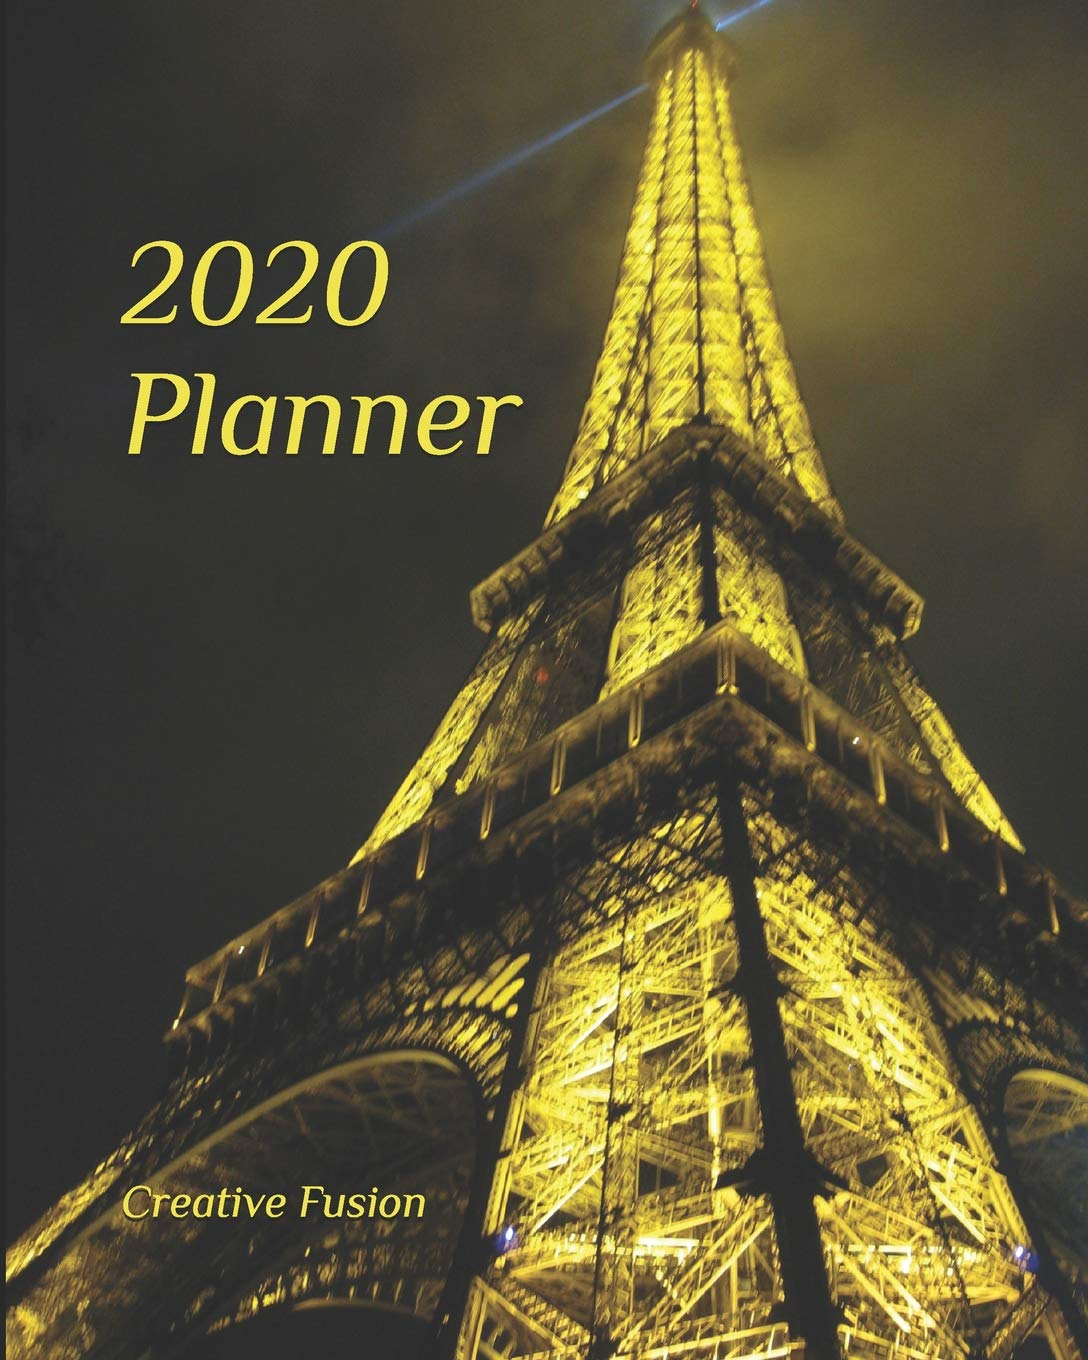 2020 Planner: Paris - 2020 Diary Planner - France 2020 book